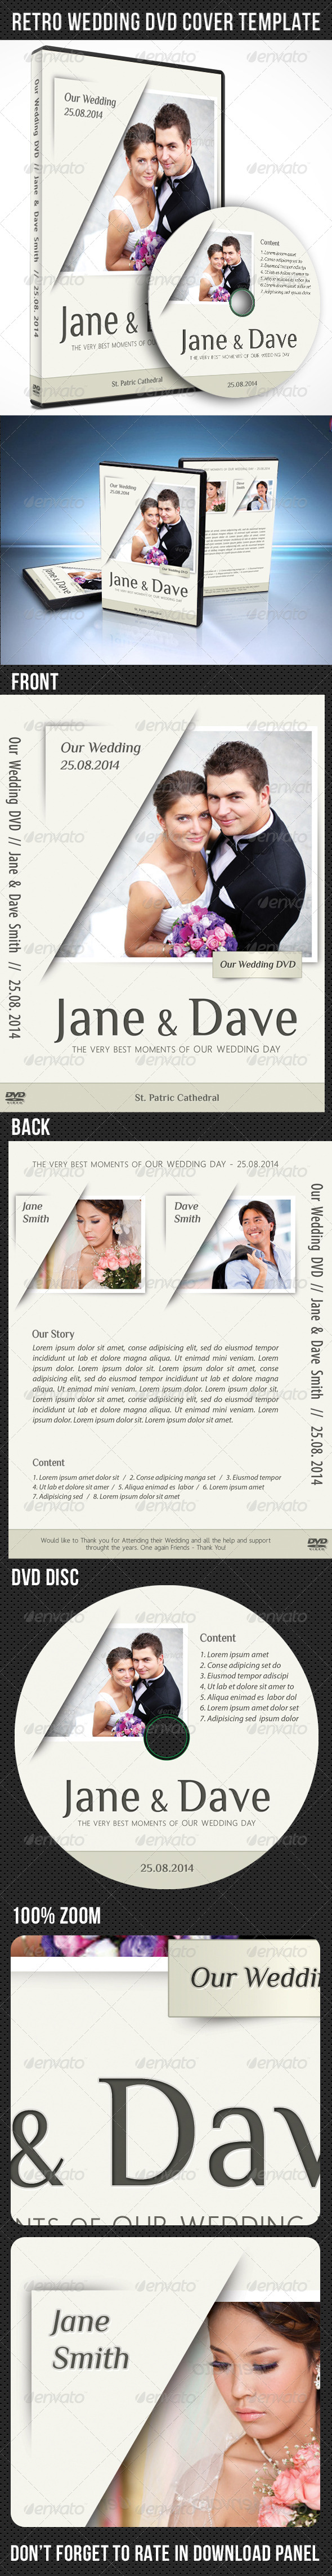 GraphicRiver Wedding DVD Cover Template 04 7638706